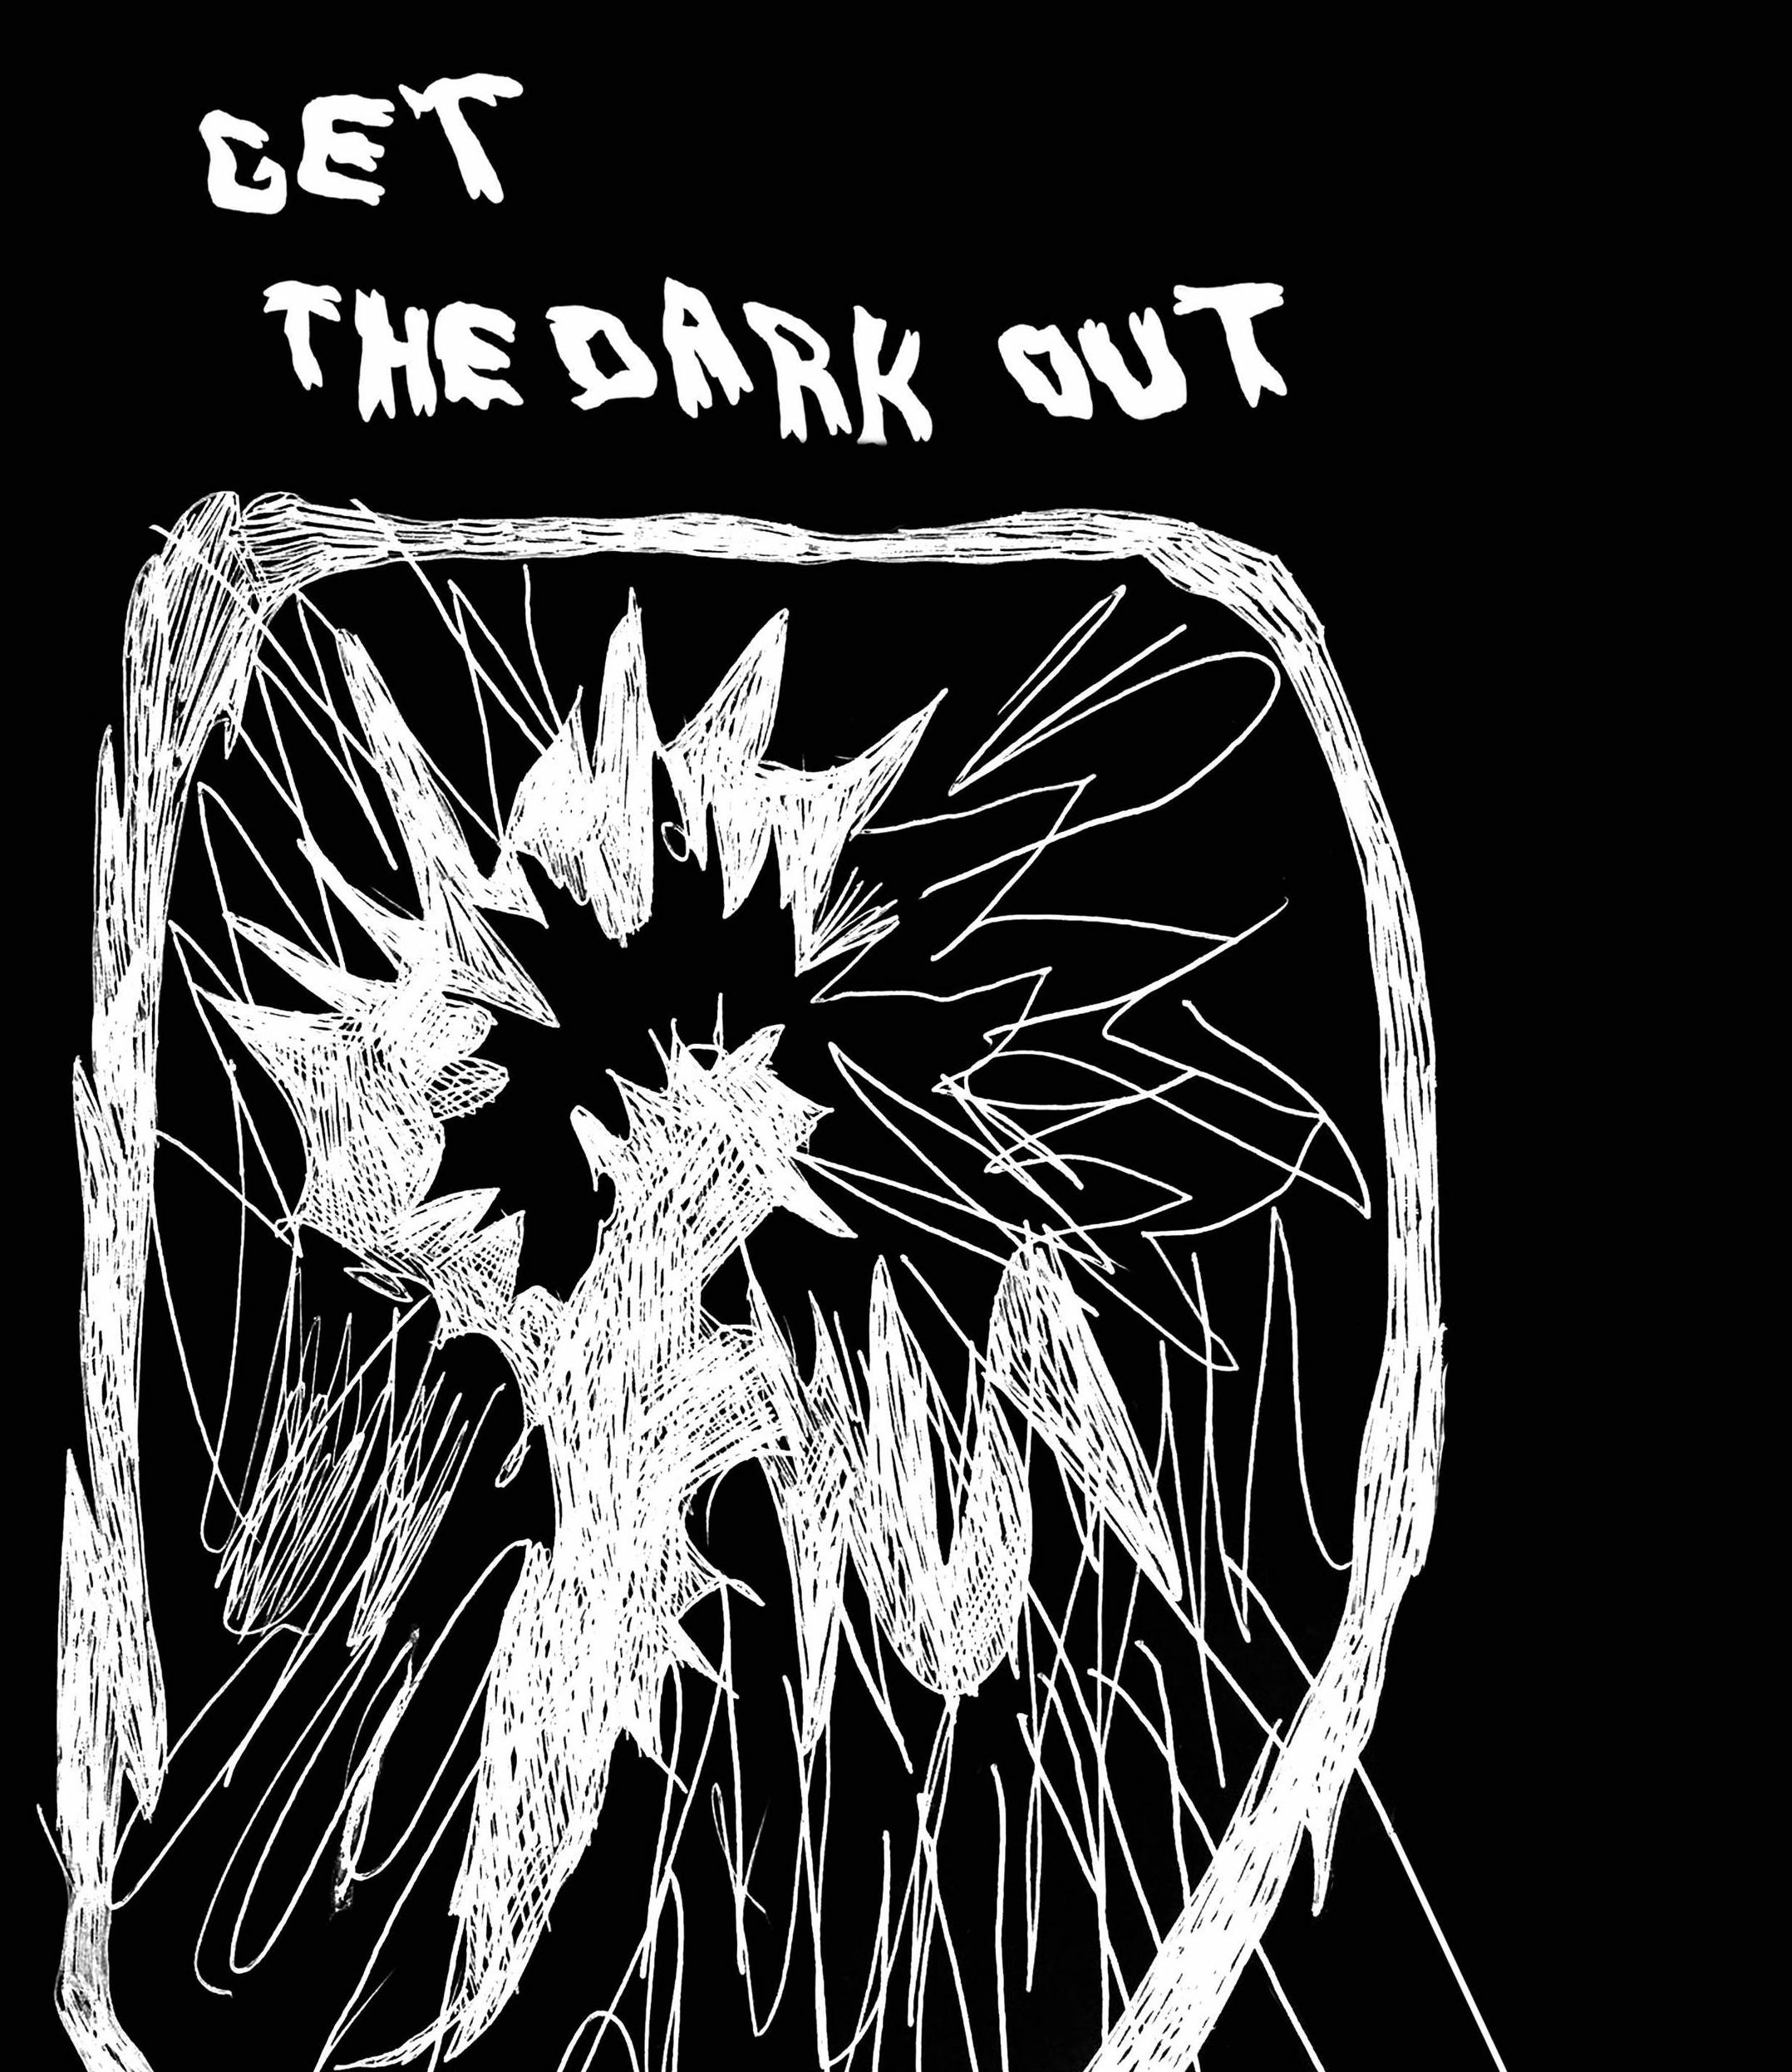 Get The Dark Out, Lisa Selby & Dudley